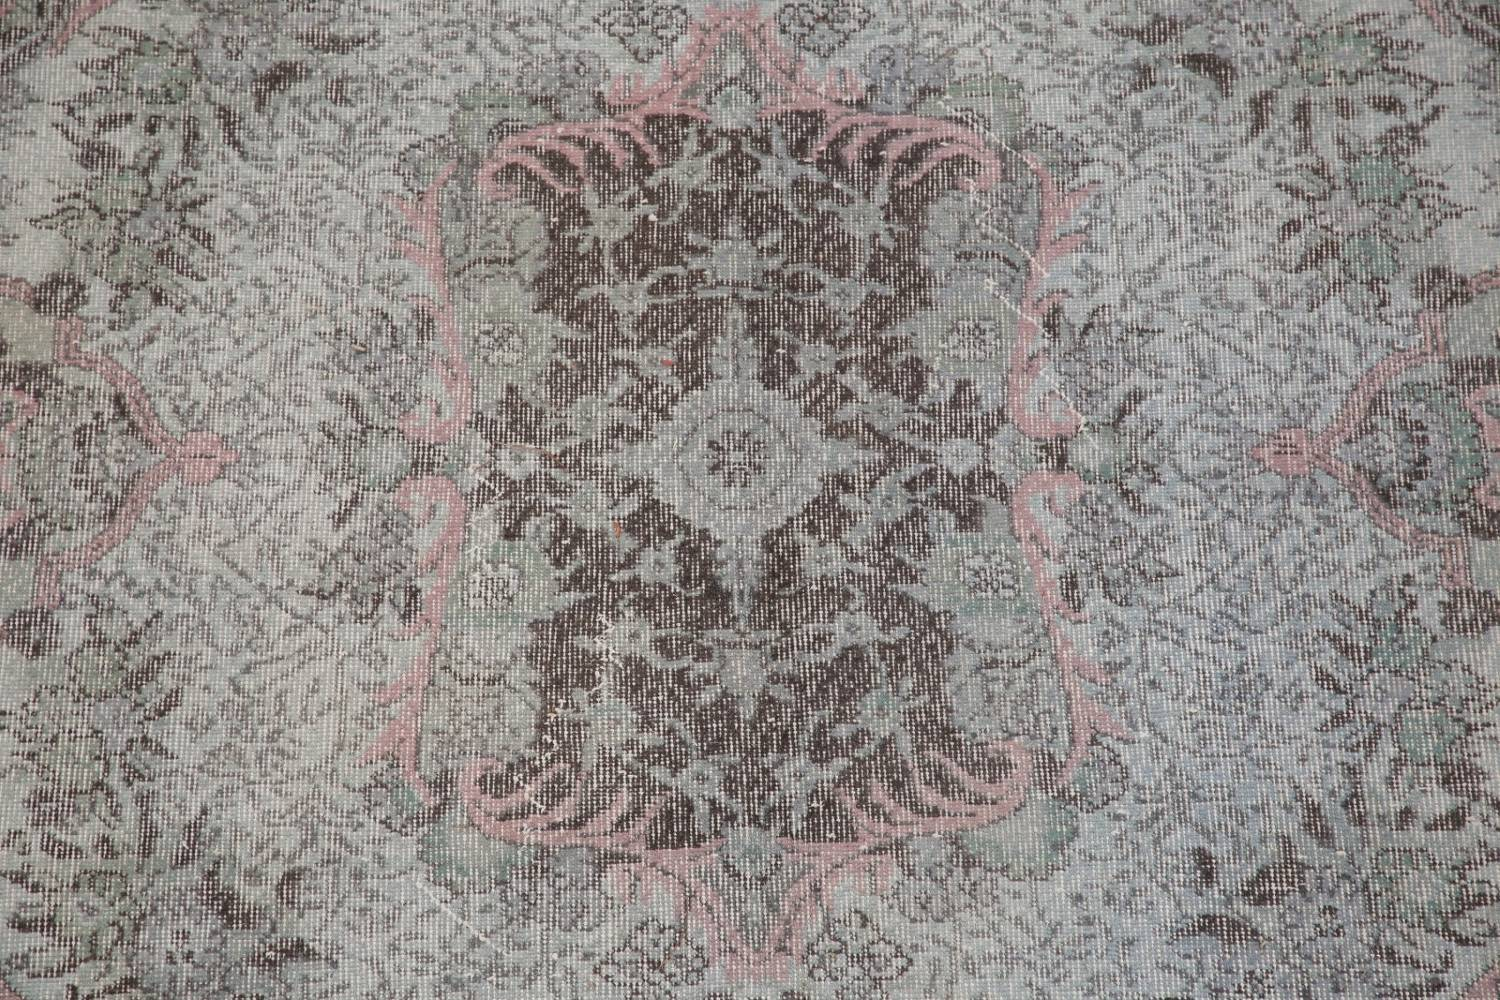 Antique Muted Distressed Aubusson Oriental Area Rug 6x10 image 4